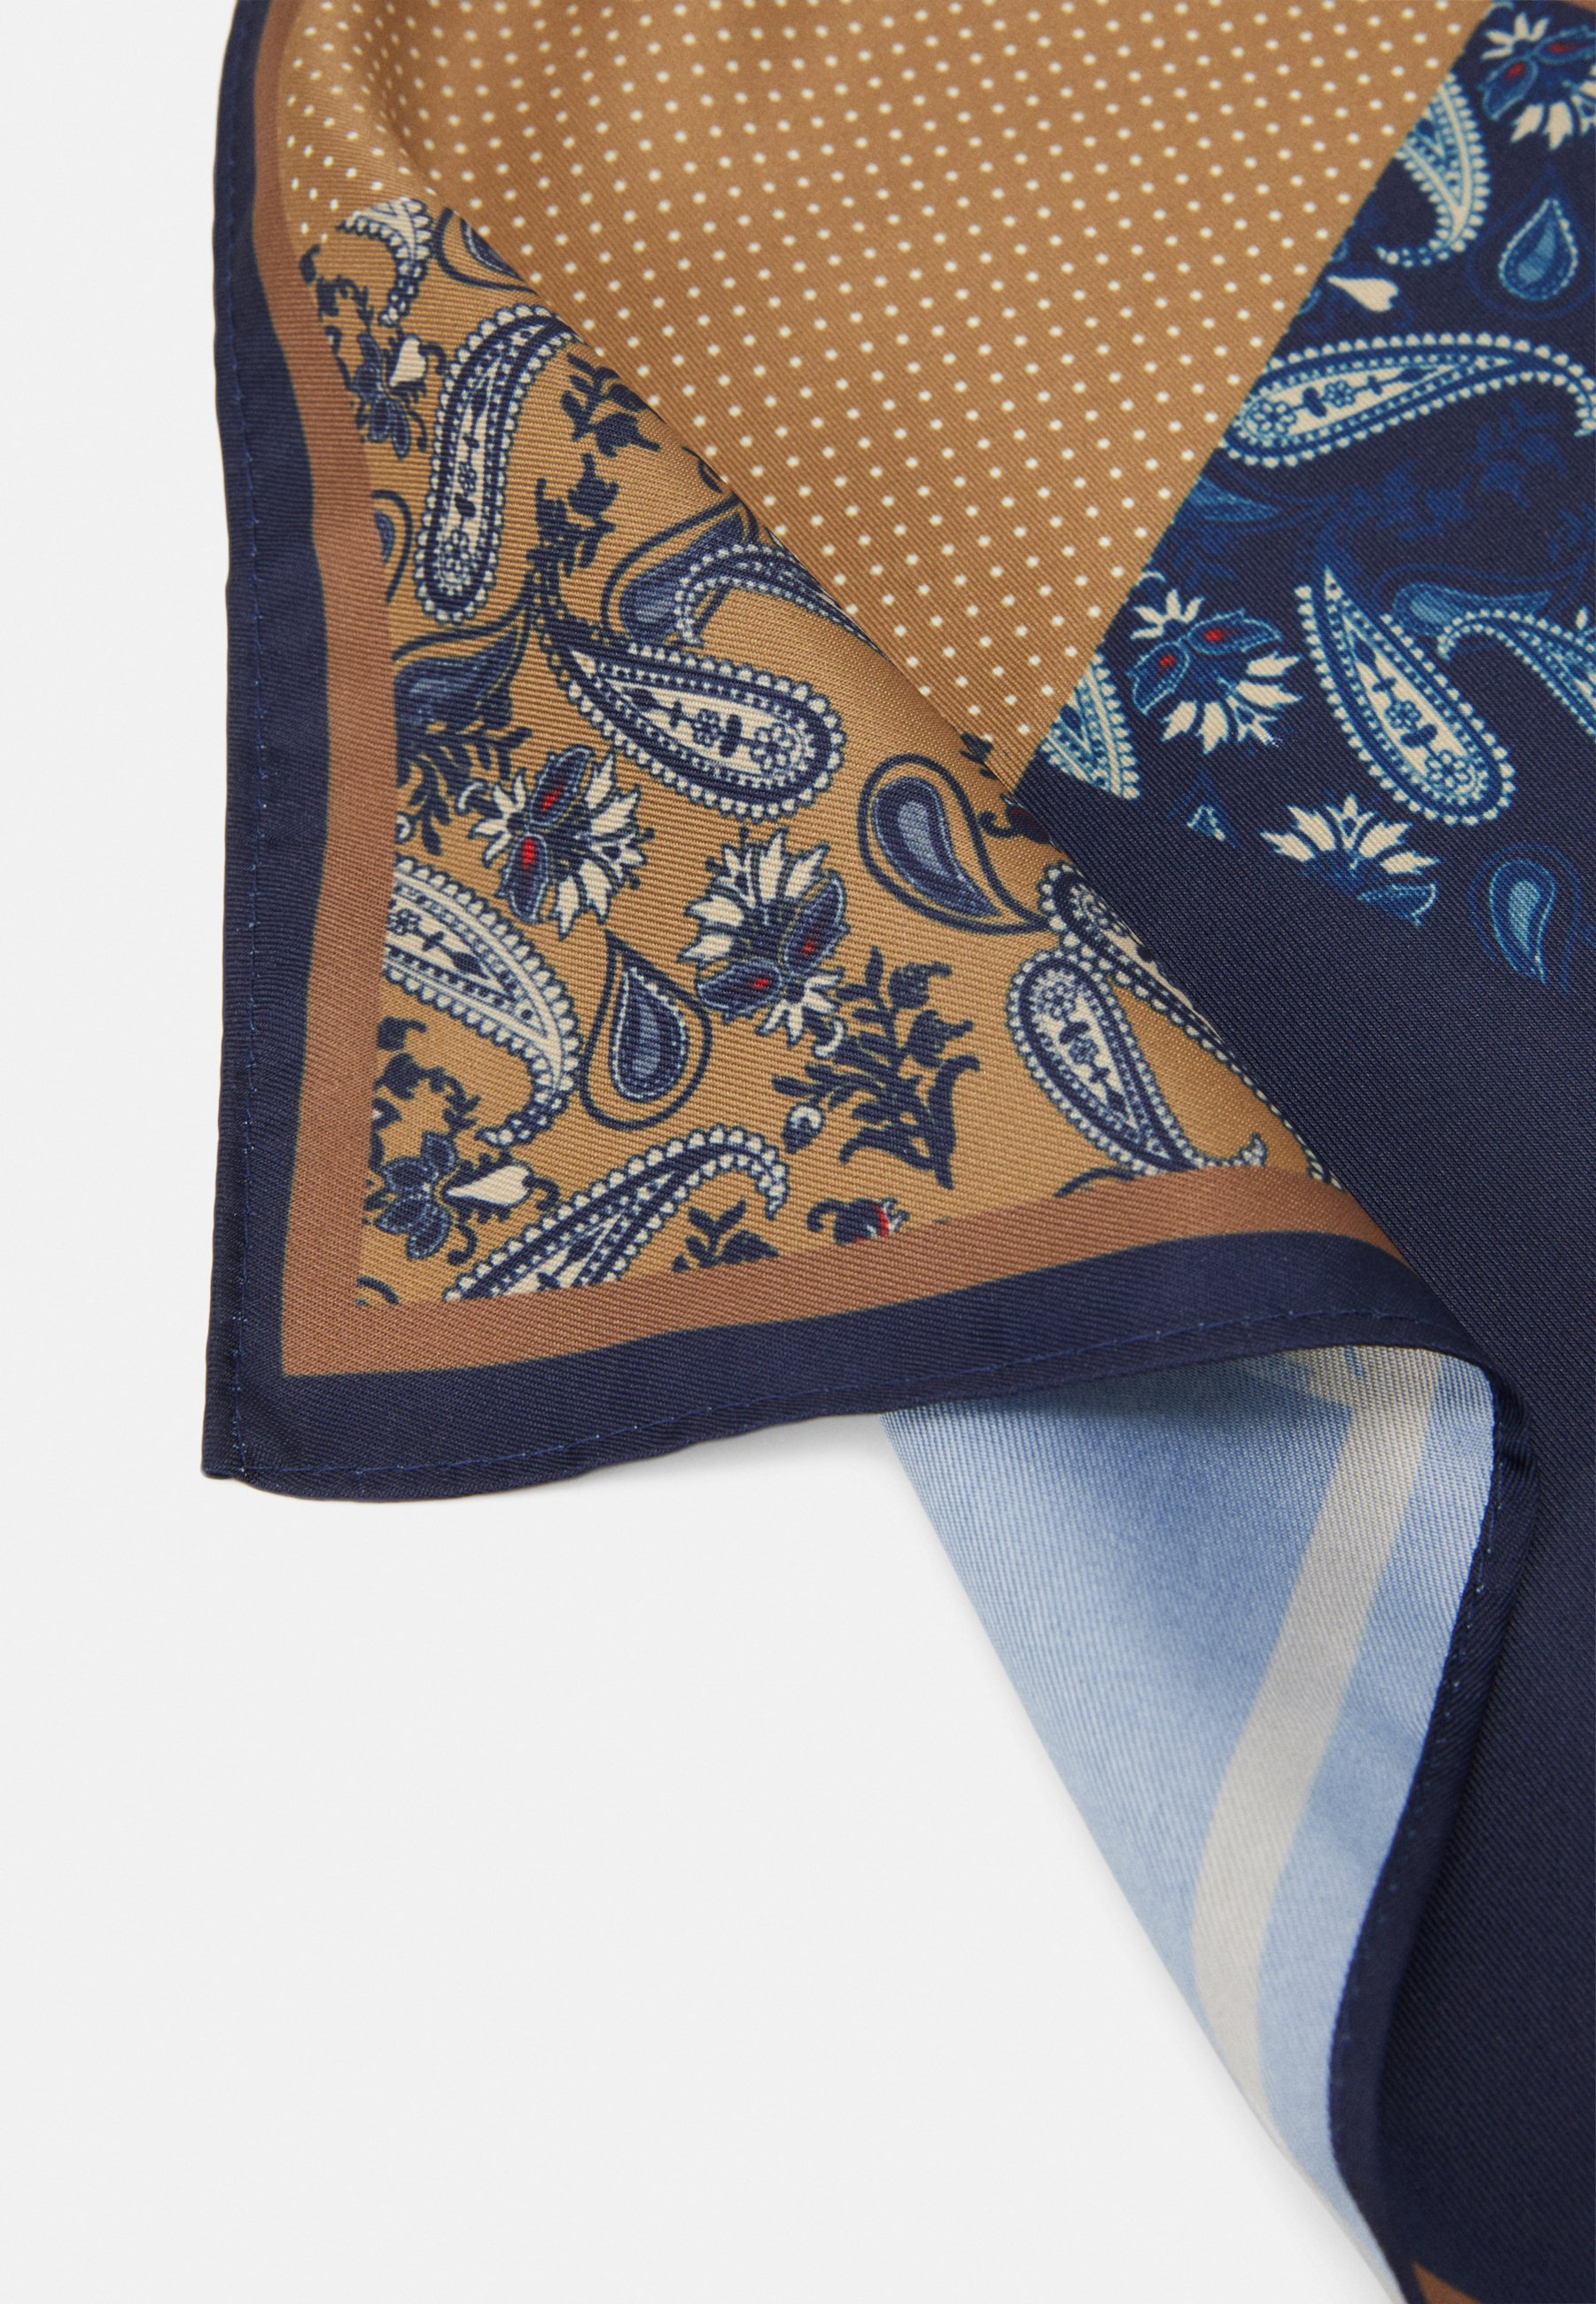 Burton Menswear London Trim Way Pocket Square - Einstecktuch Navy/dunkelblau